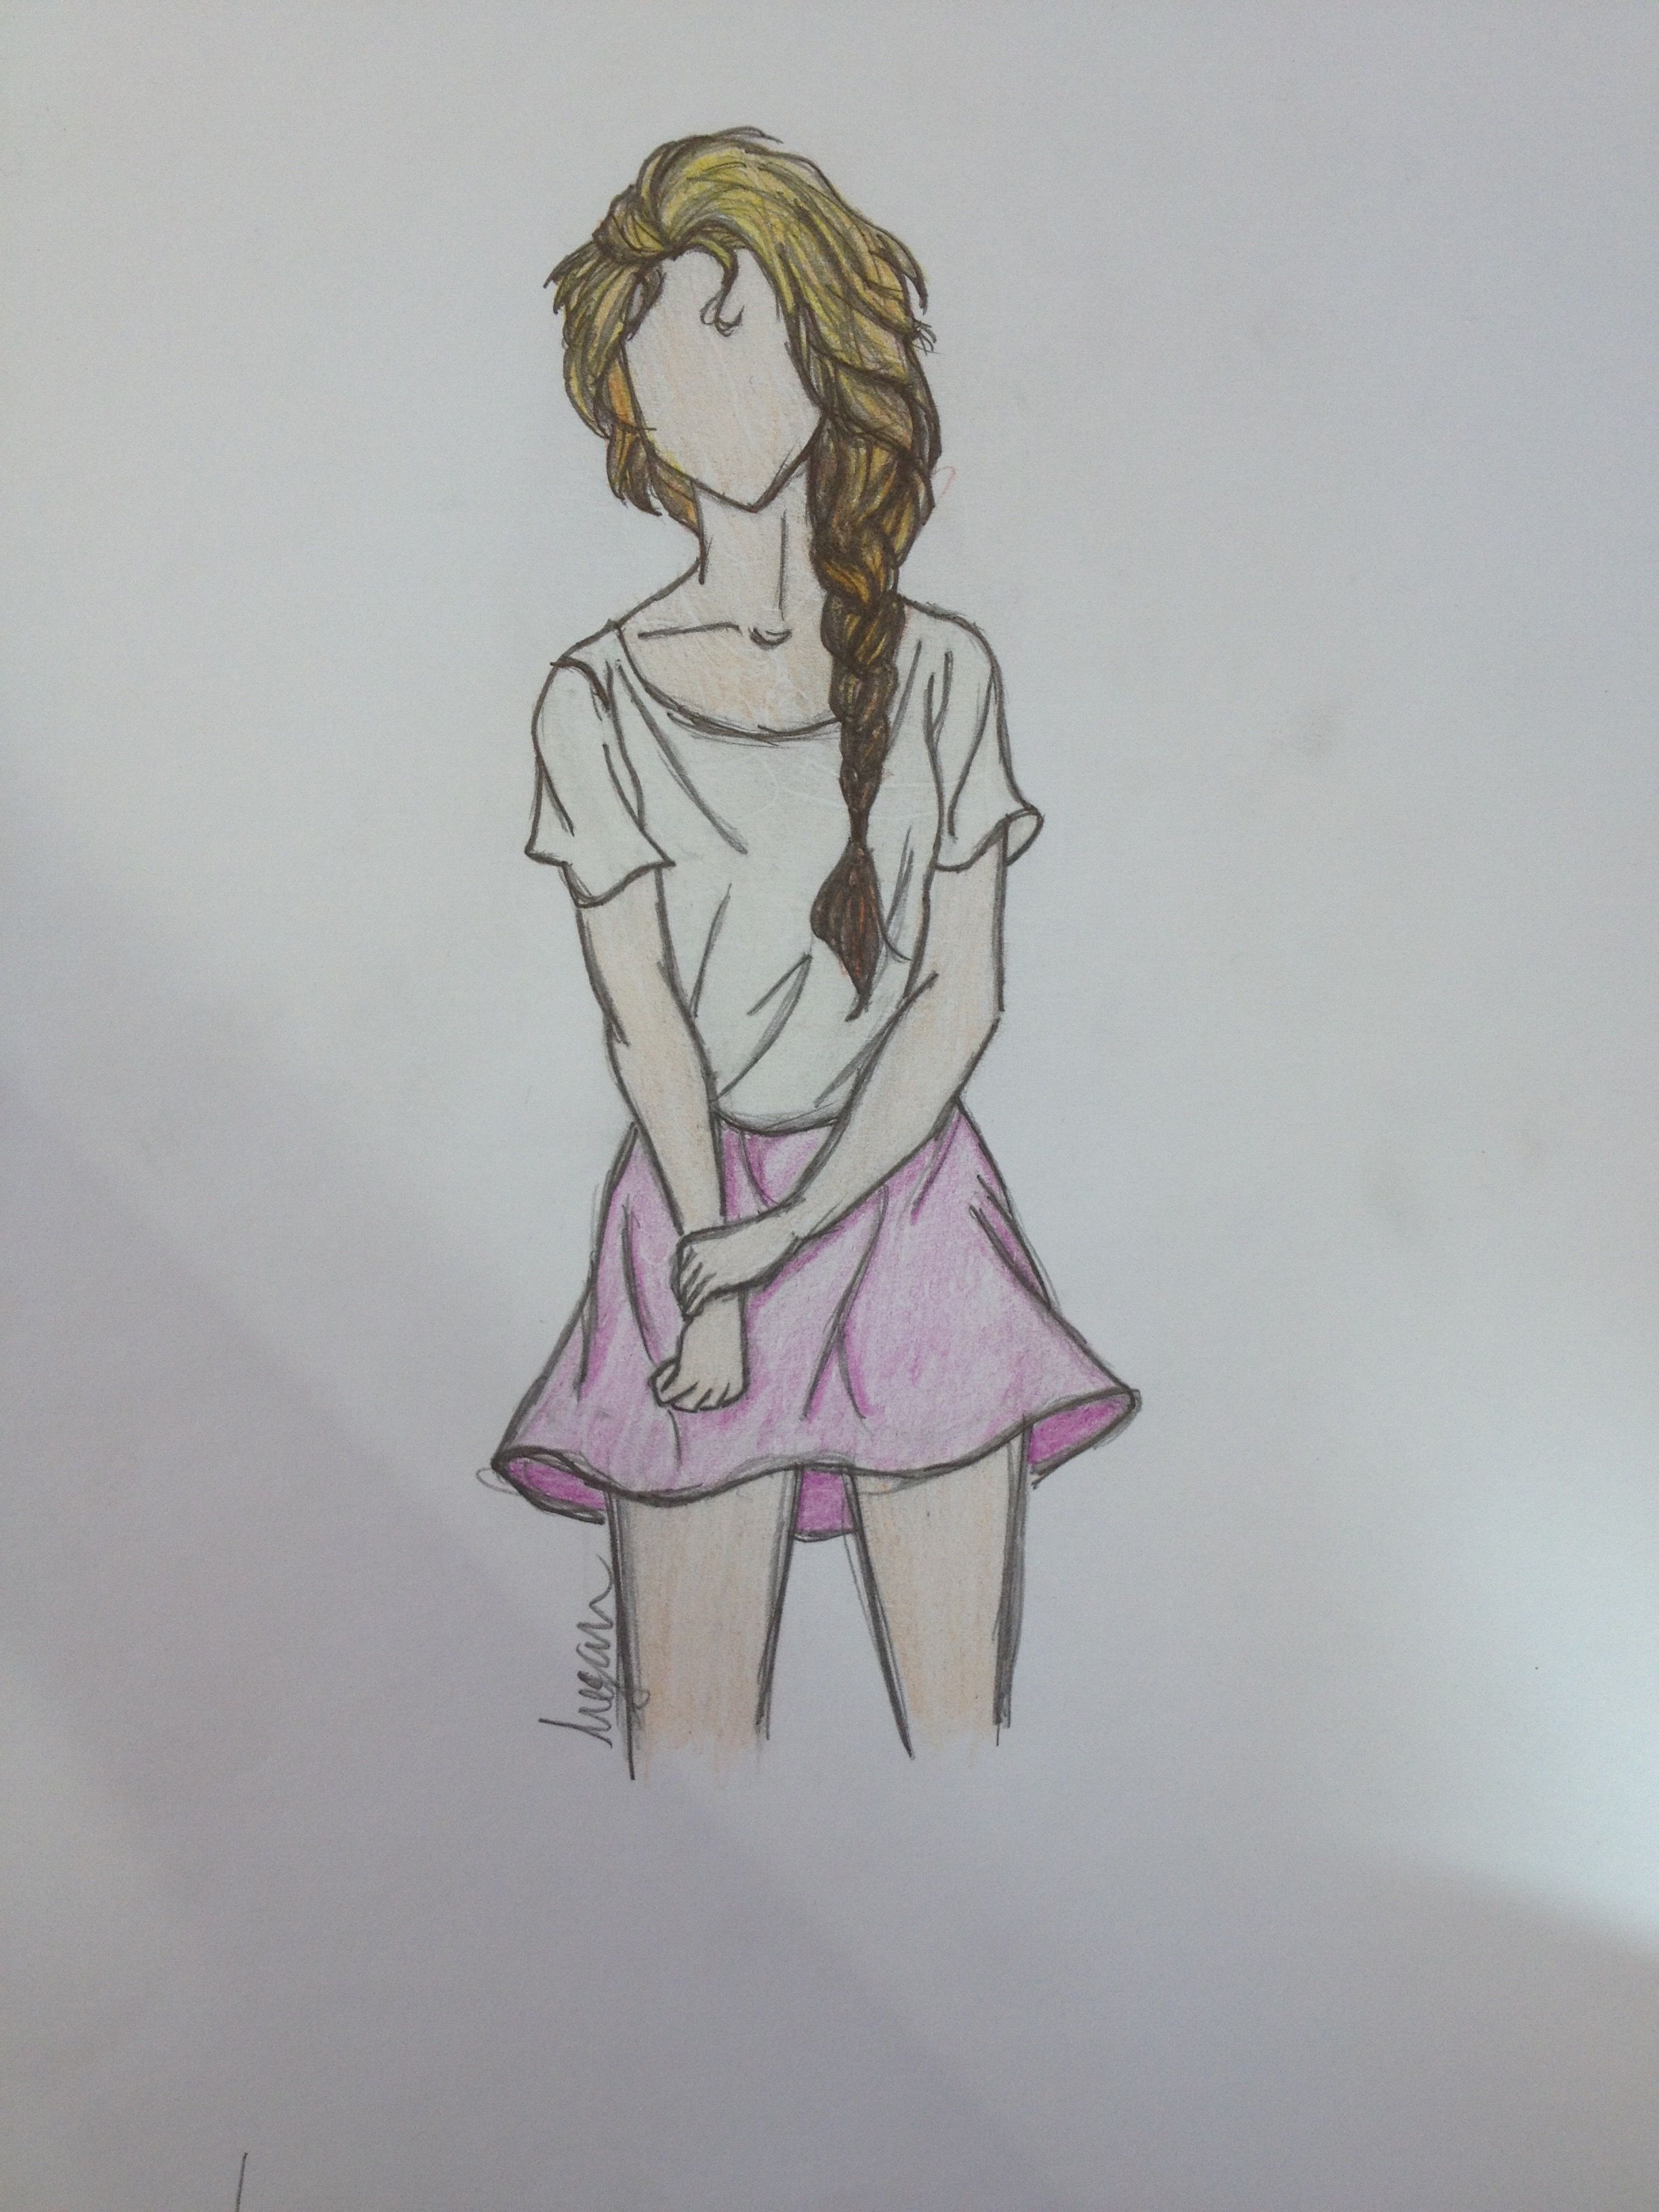 Calypso From Percy Jackson With Images Percy Jackson Art